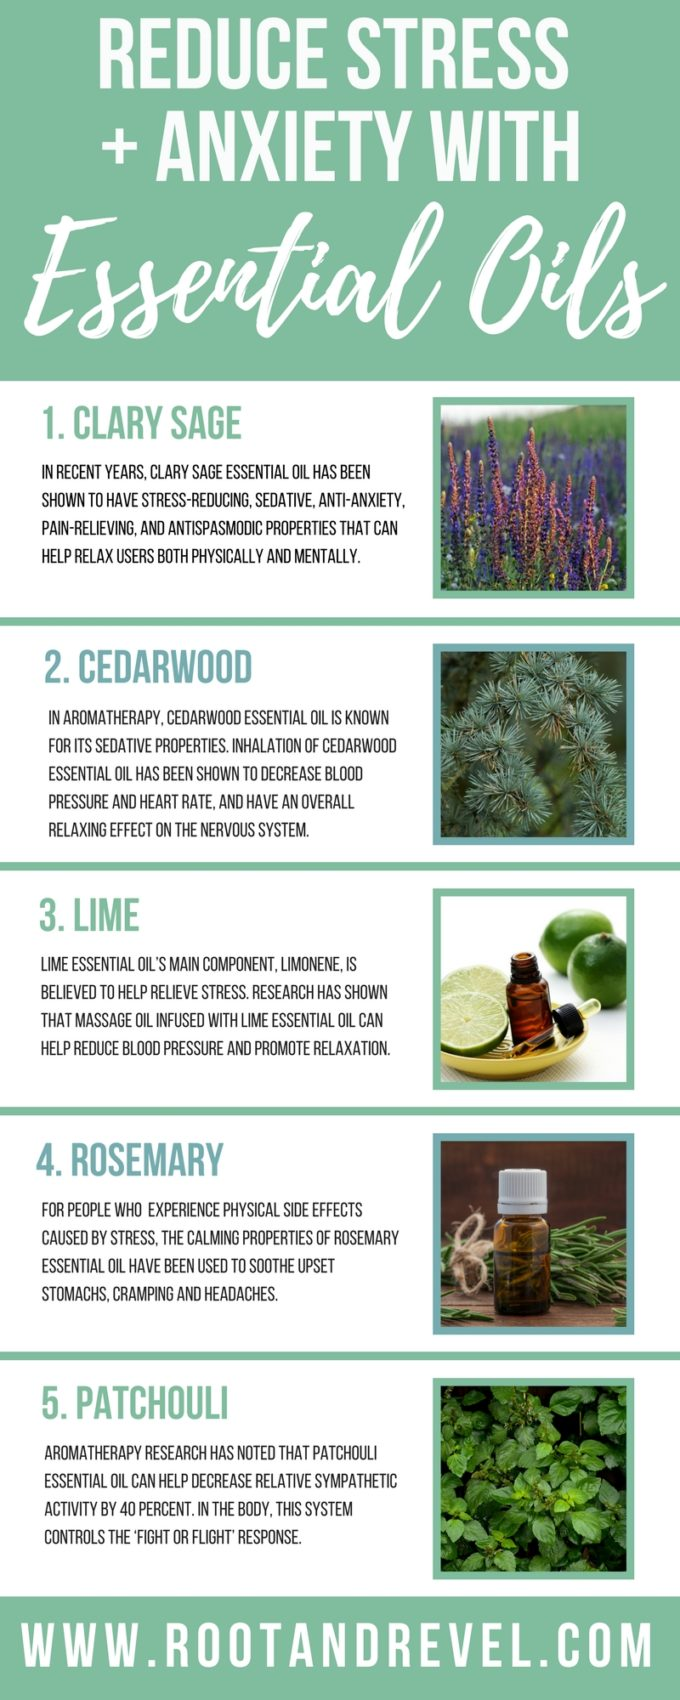 This is a guide to essential oils for stress, anxiety, sleep and relaxation. Whether you suffer from depression, anxiety or chronic stress, these calming essential oils can help you de-stress, sleep better, reduce panic attacks, and just relax.